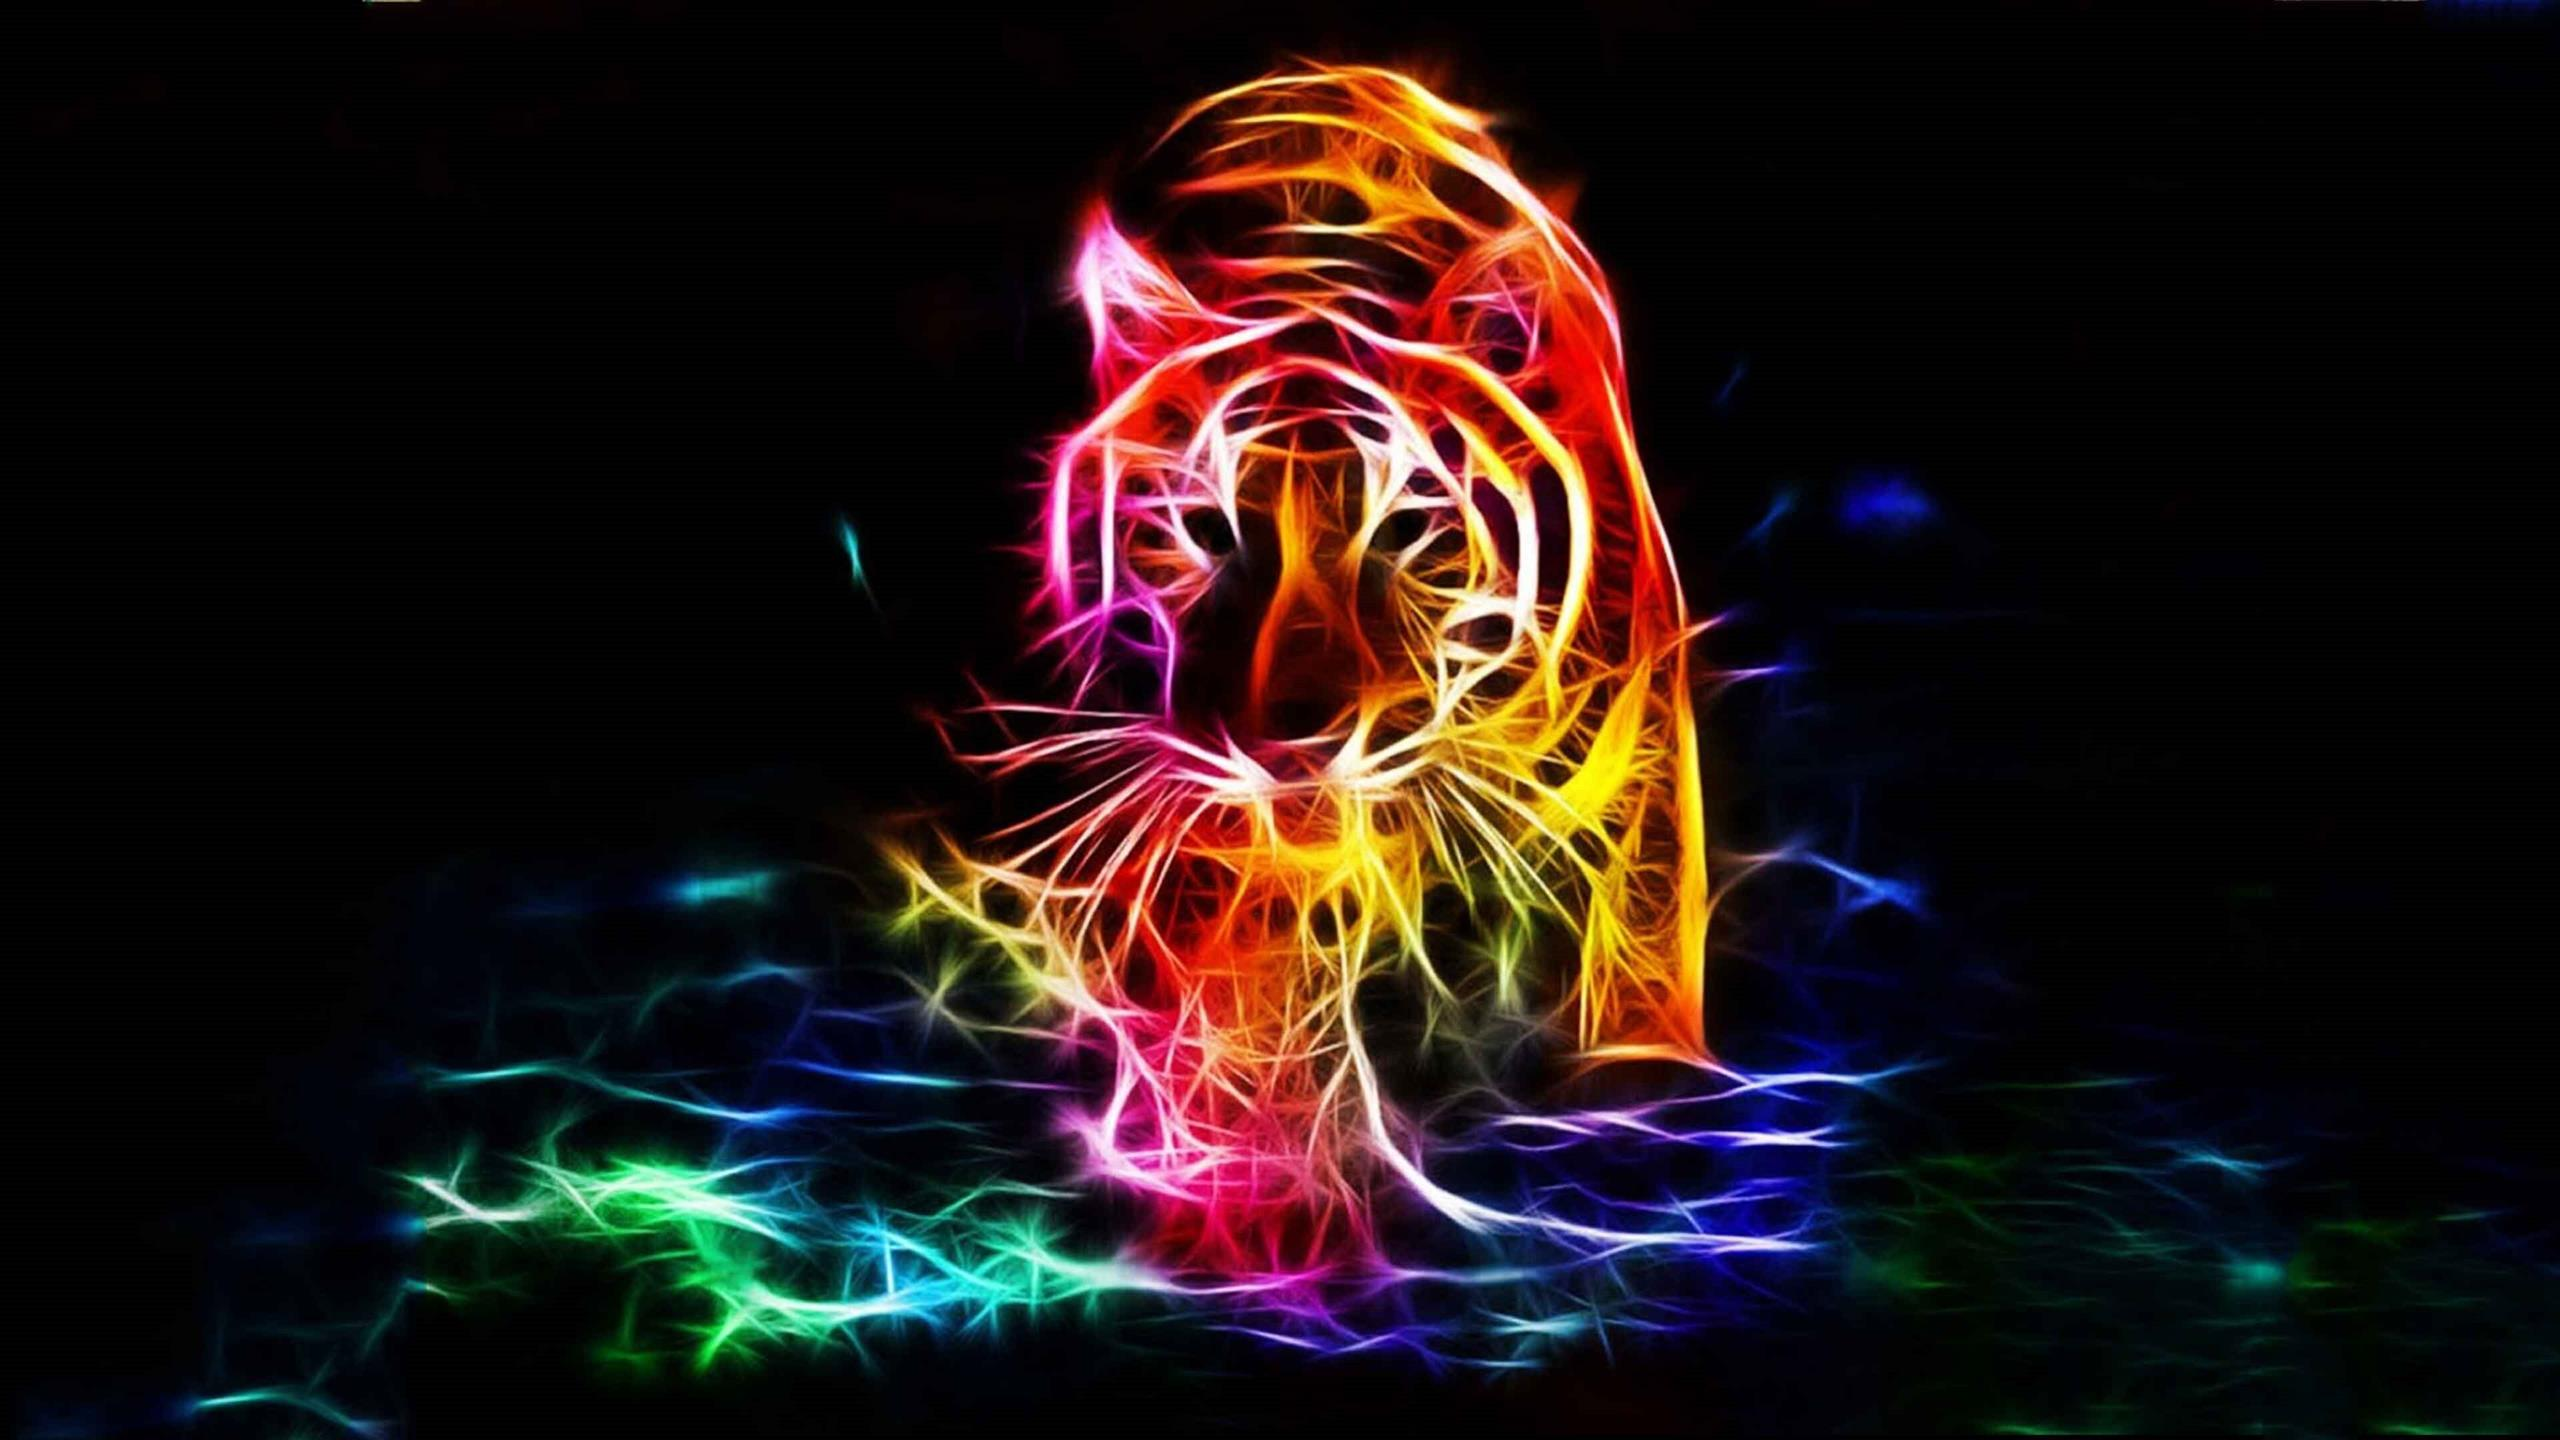 2560x1440 3D Walking Tiger Color 4K Background Wallpapers